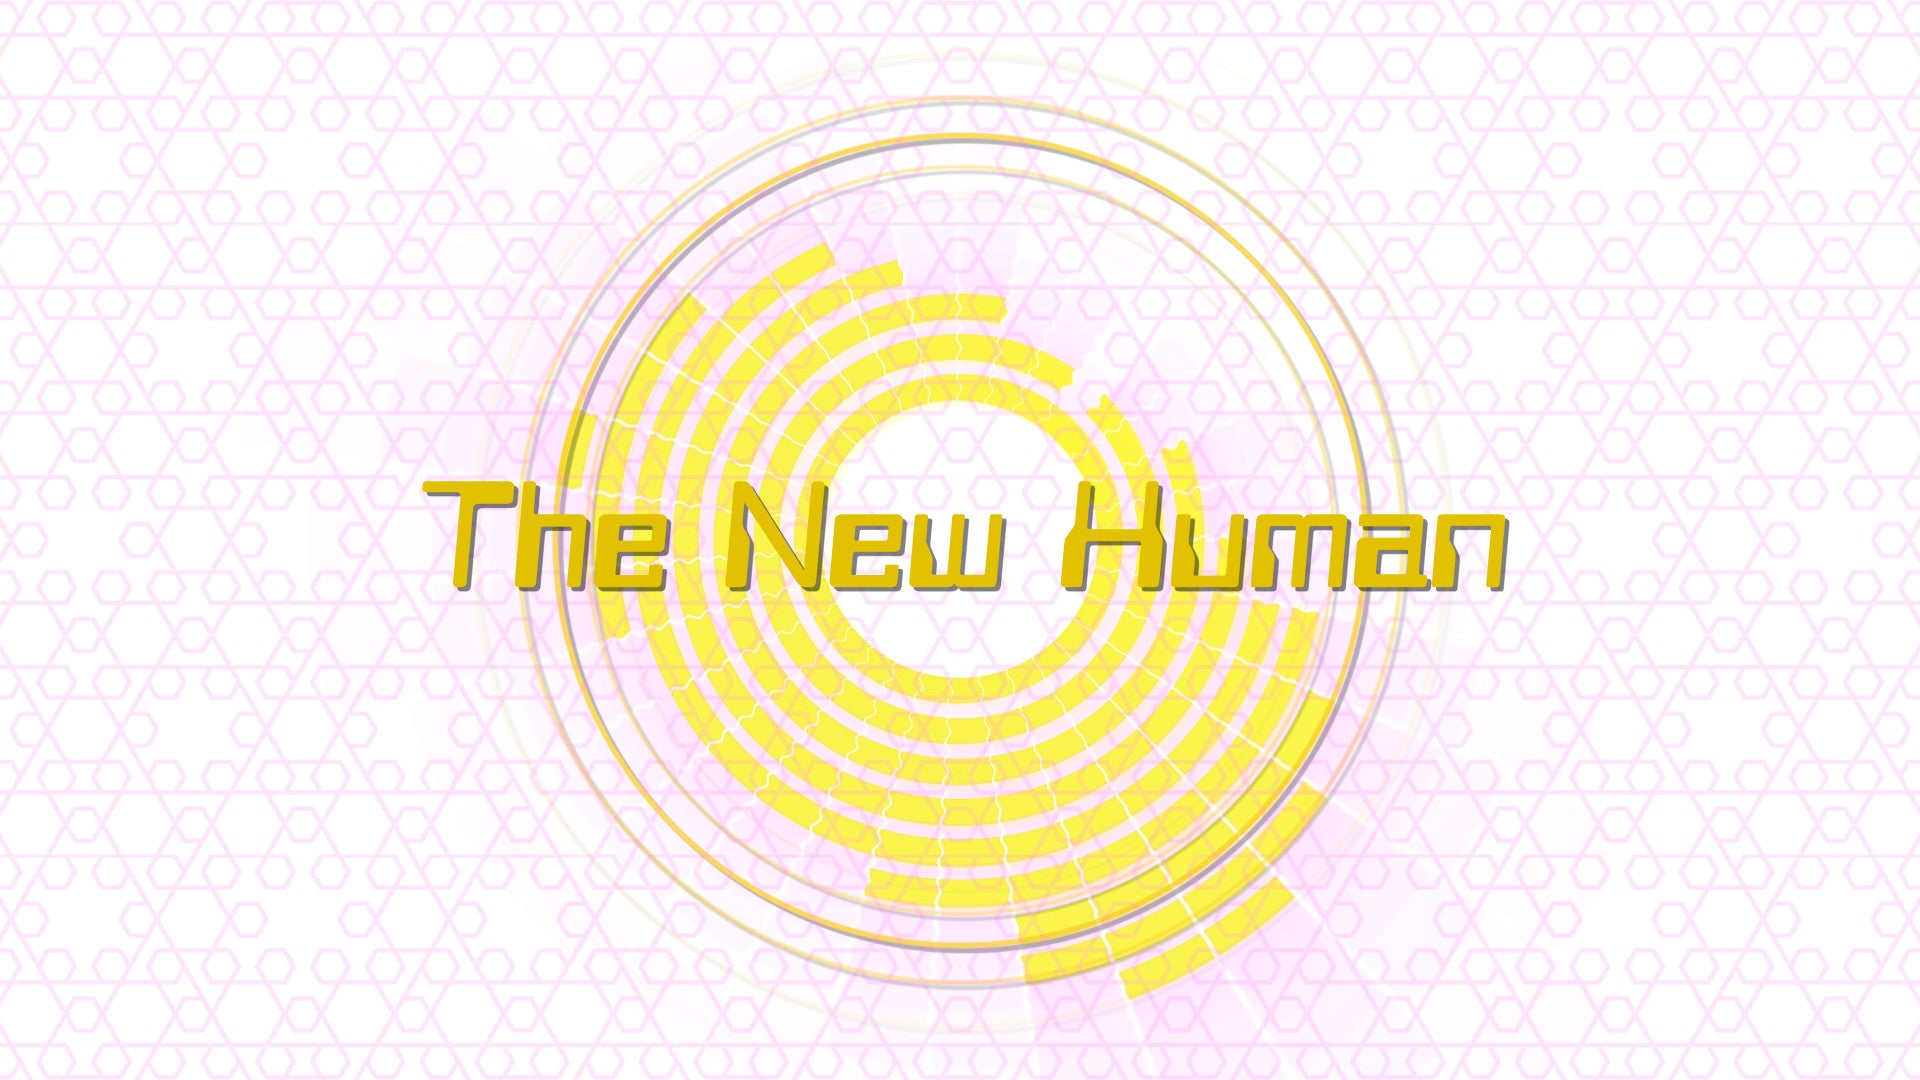 The New Human - The Grove